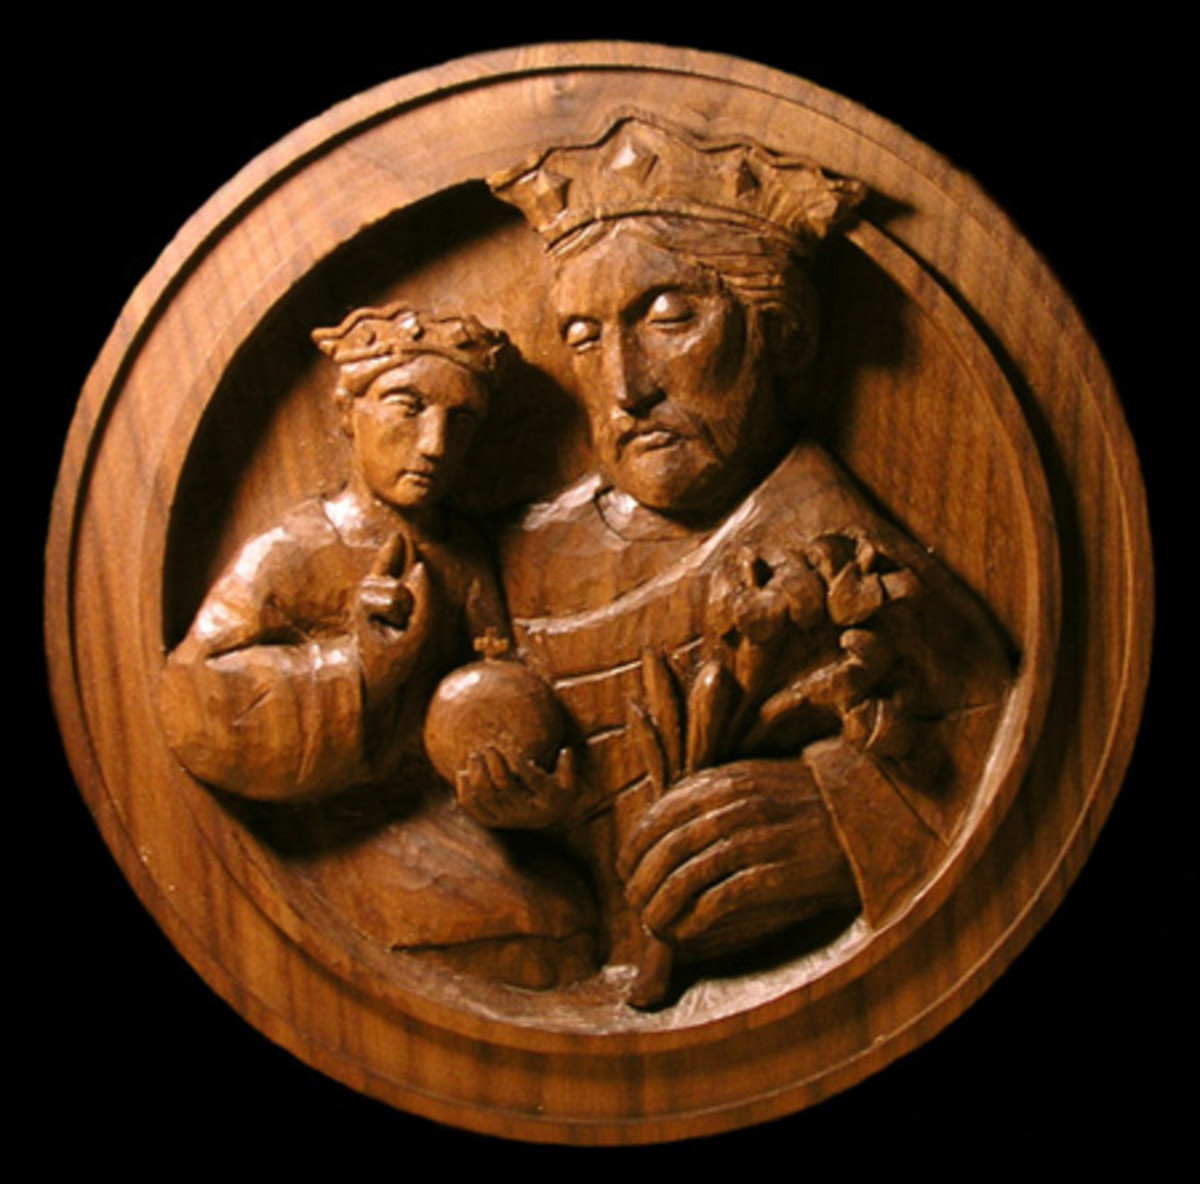 St. Joseph and Christ Child, American black walnut